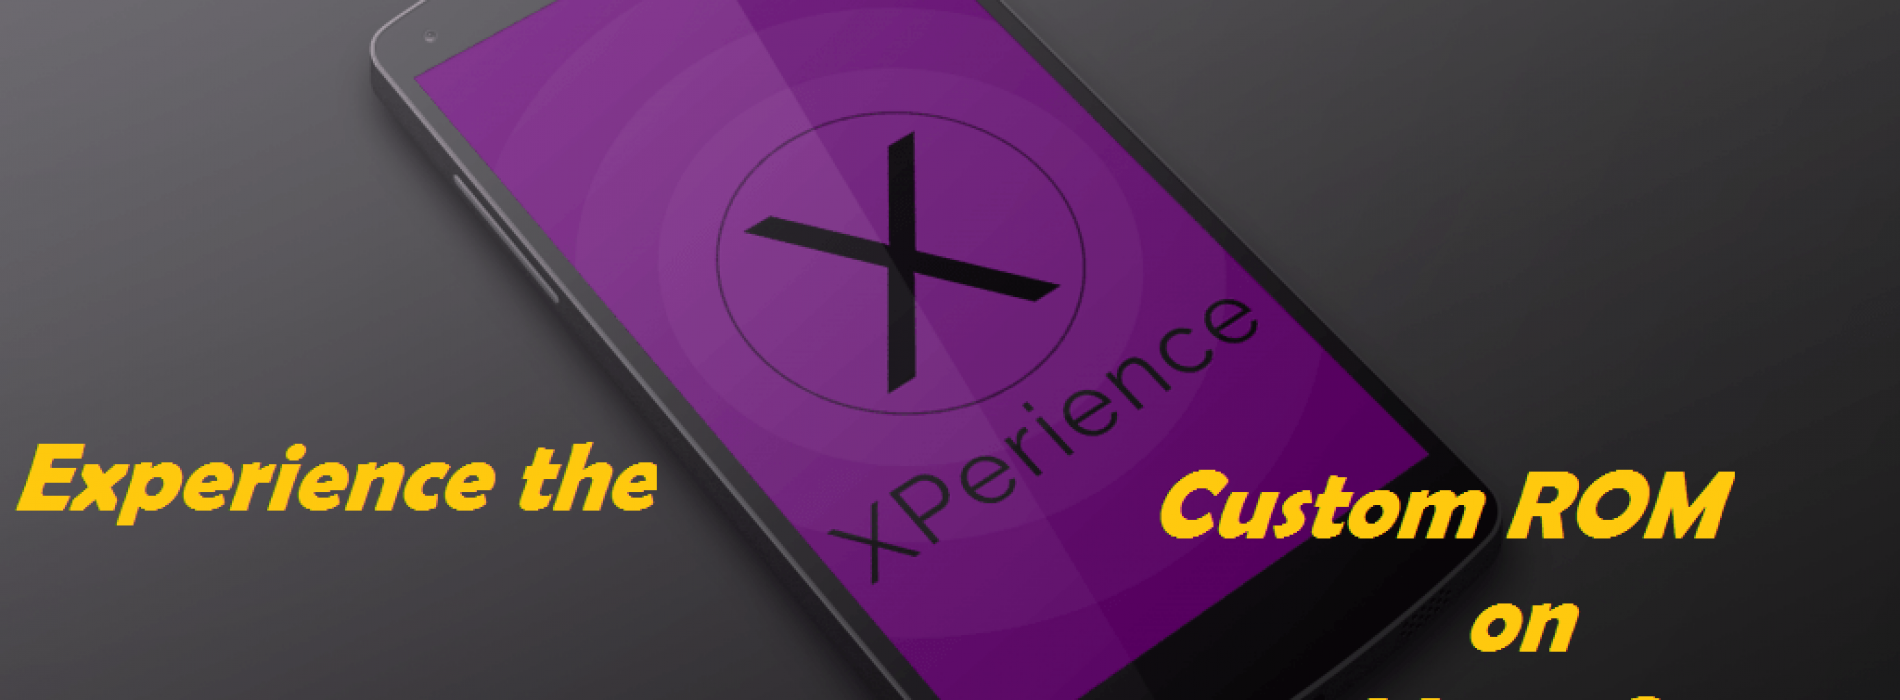 [ROM] XPerience ROM for Moto G all variants based on CyanogenMod 12 Android Lollipop